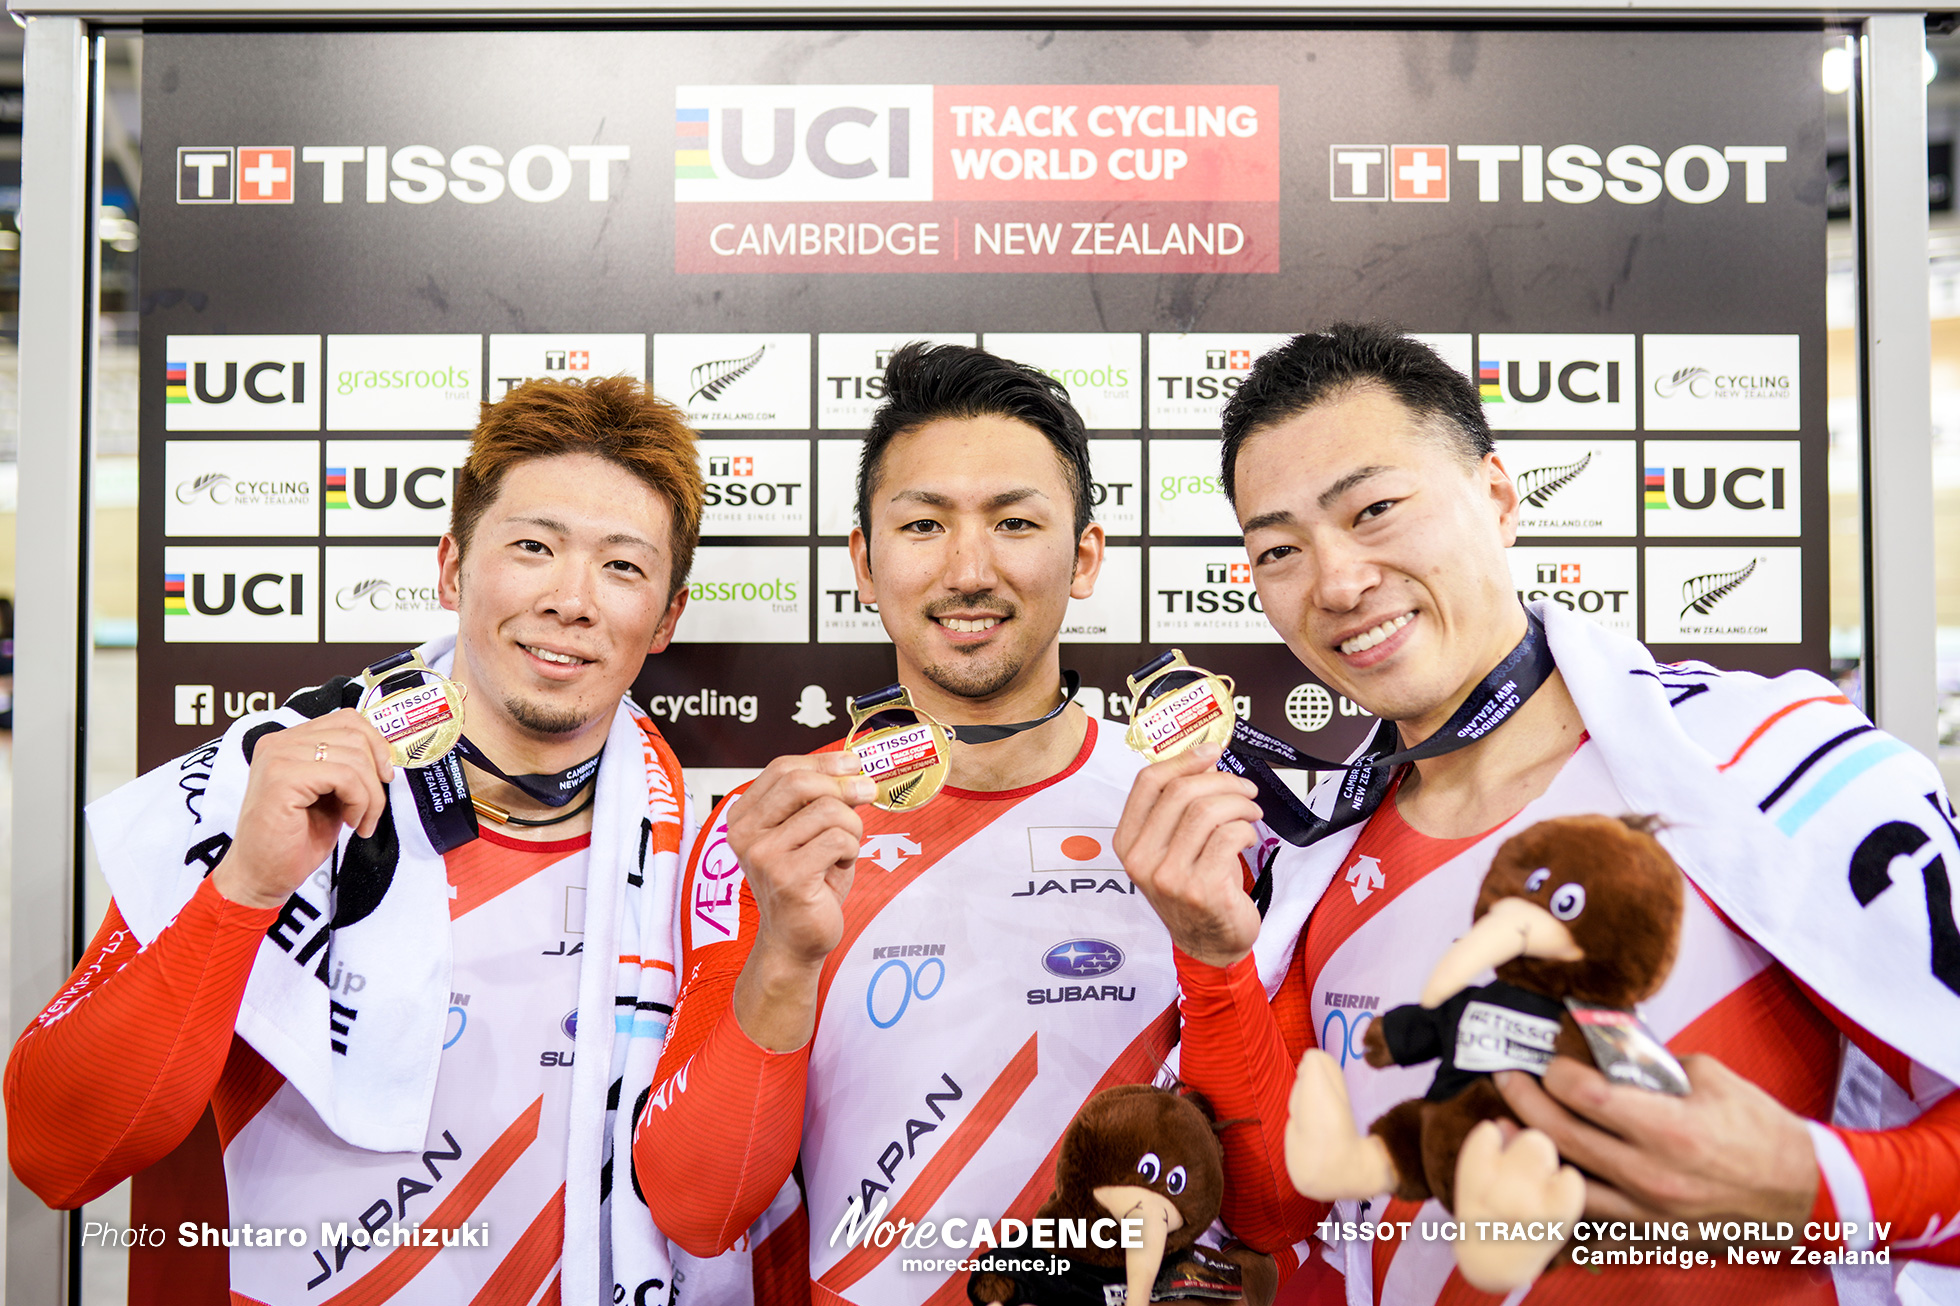 Men's Team Sprint / TISSOT UCI TRACK CYCLING WORLD CUP IV, Cambridge, New Zealand, 深谷知広 新田祐大 雨谷一樹